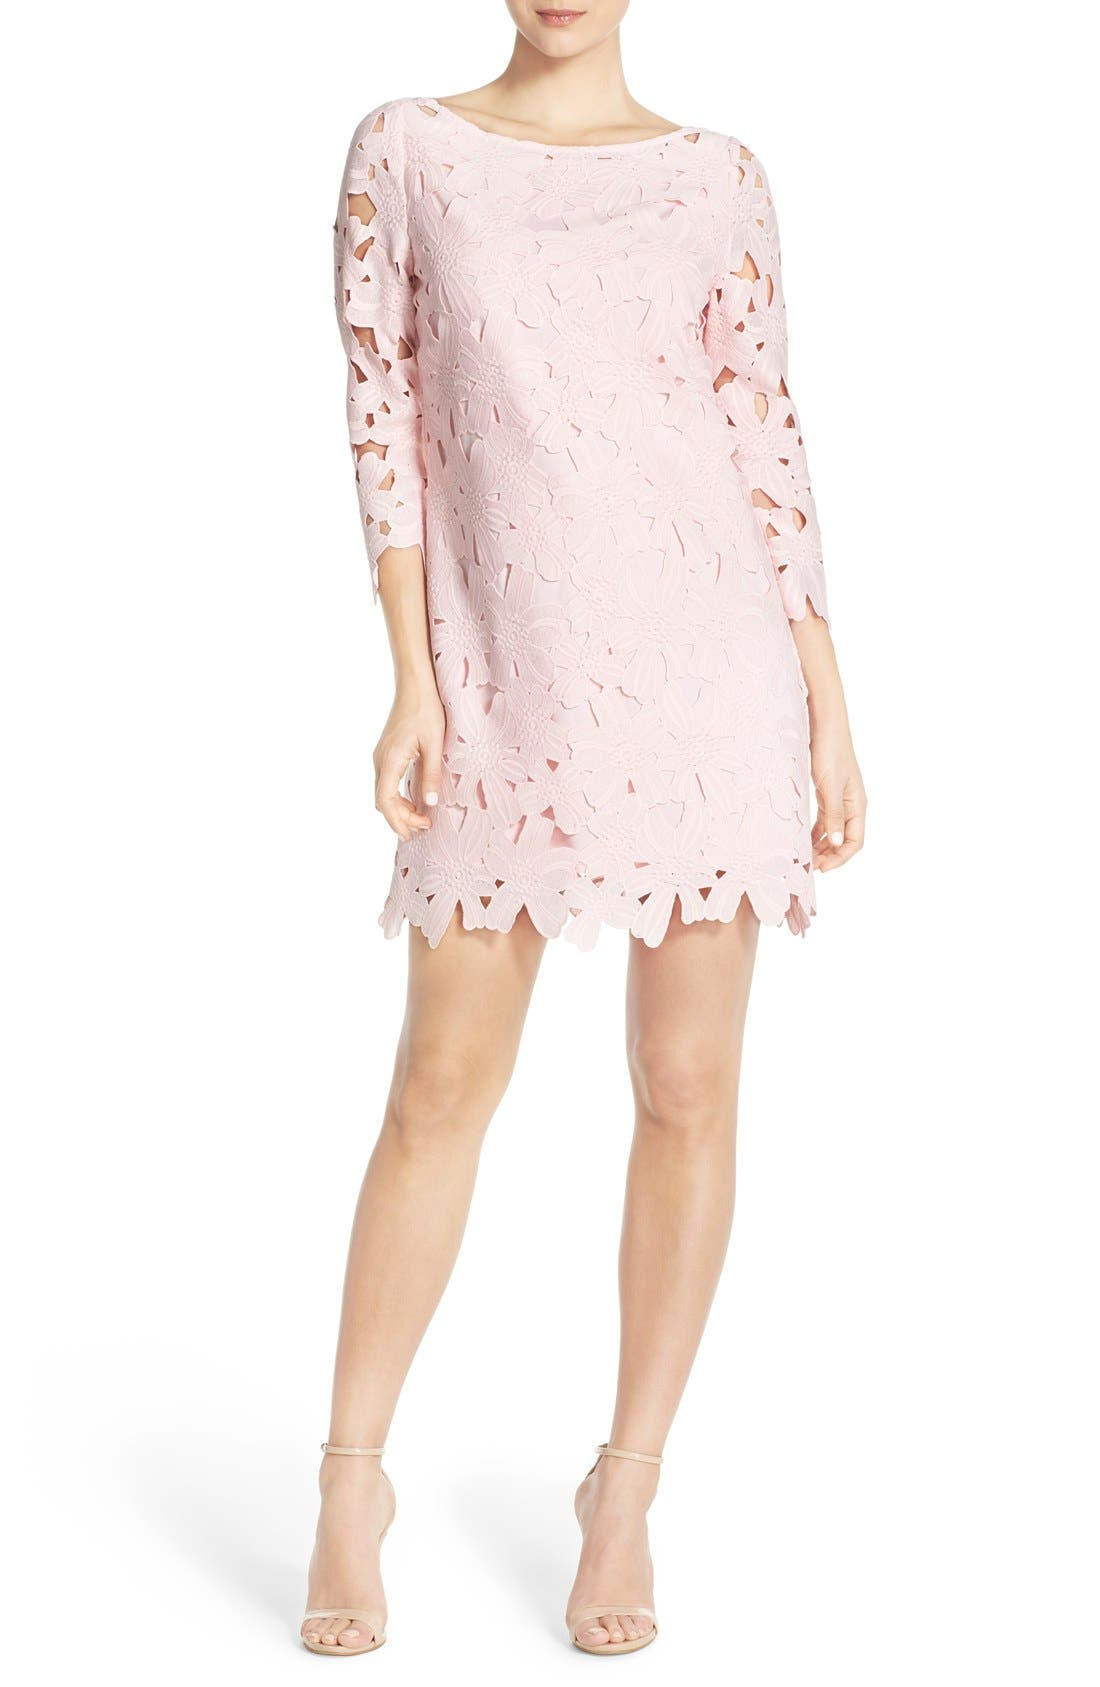 Felicity & Coco Belza Floral Lace Shift Dress (Nordstrom Exclusive)